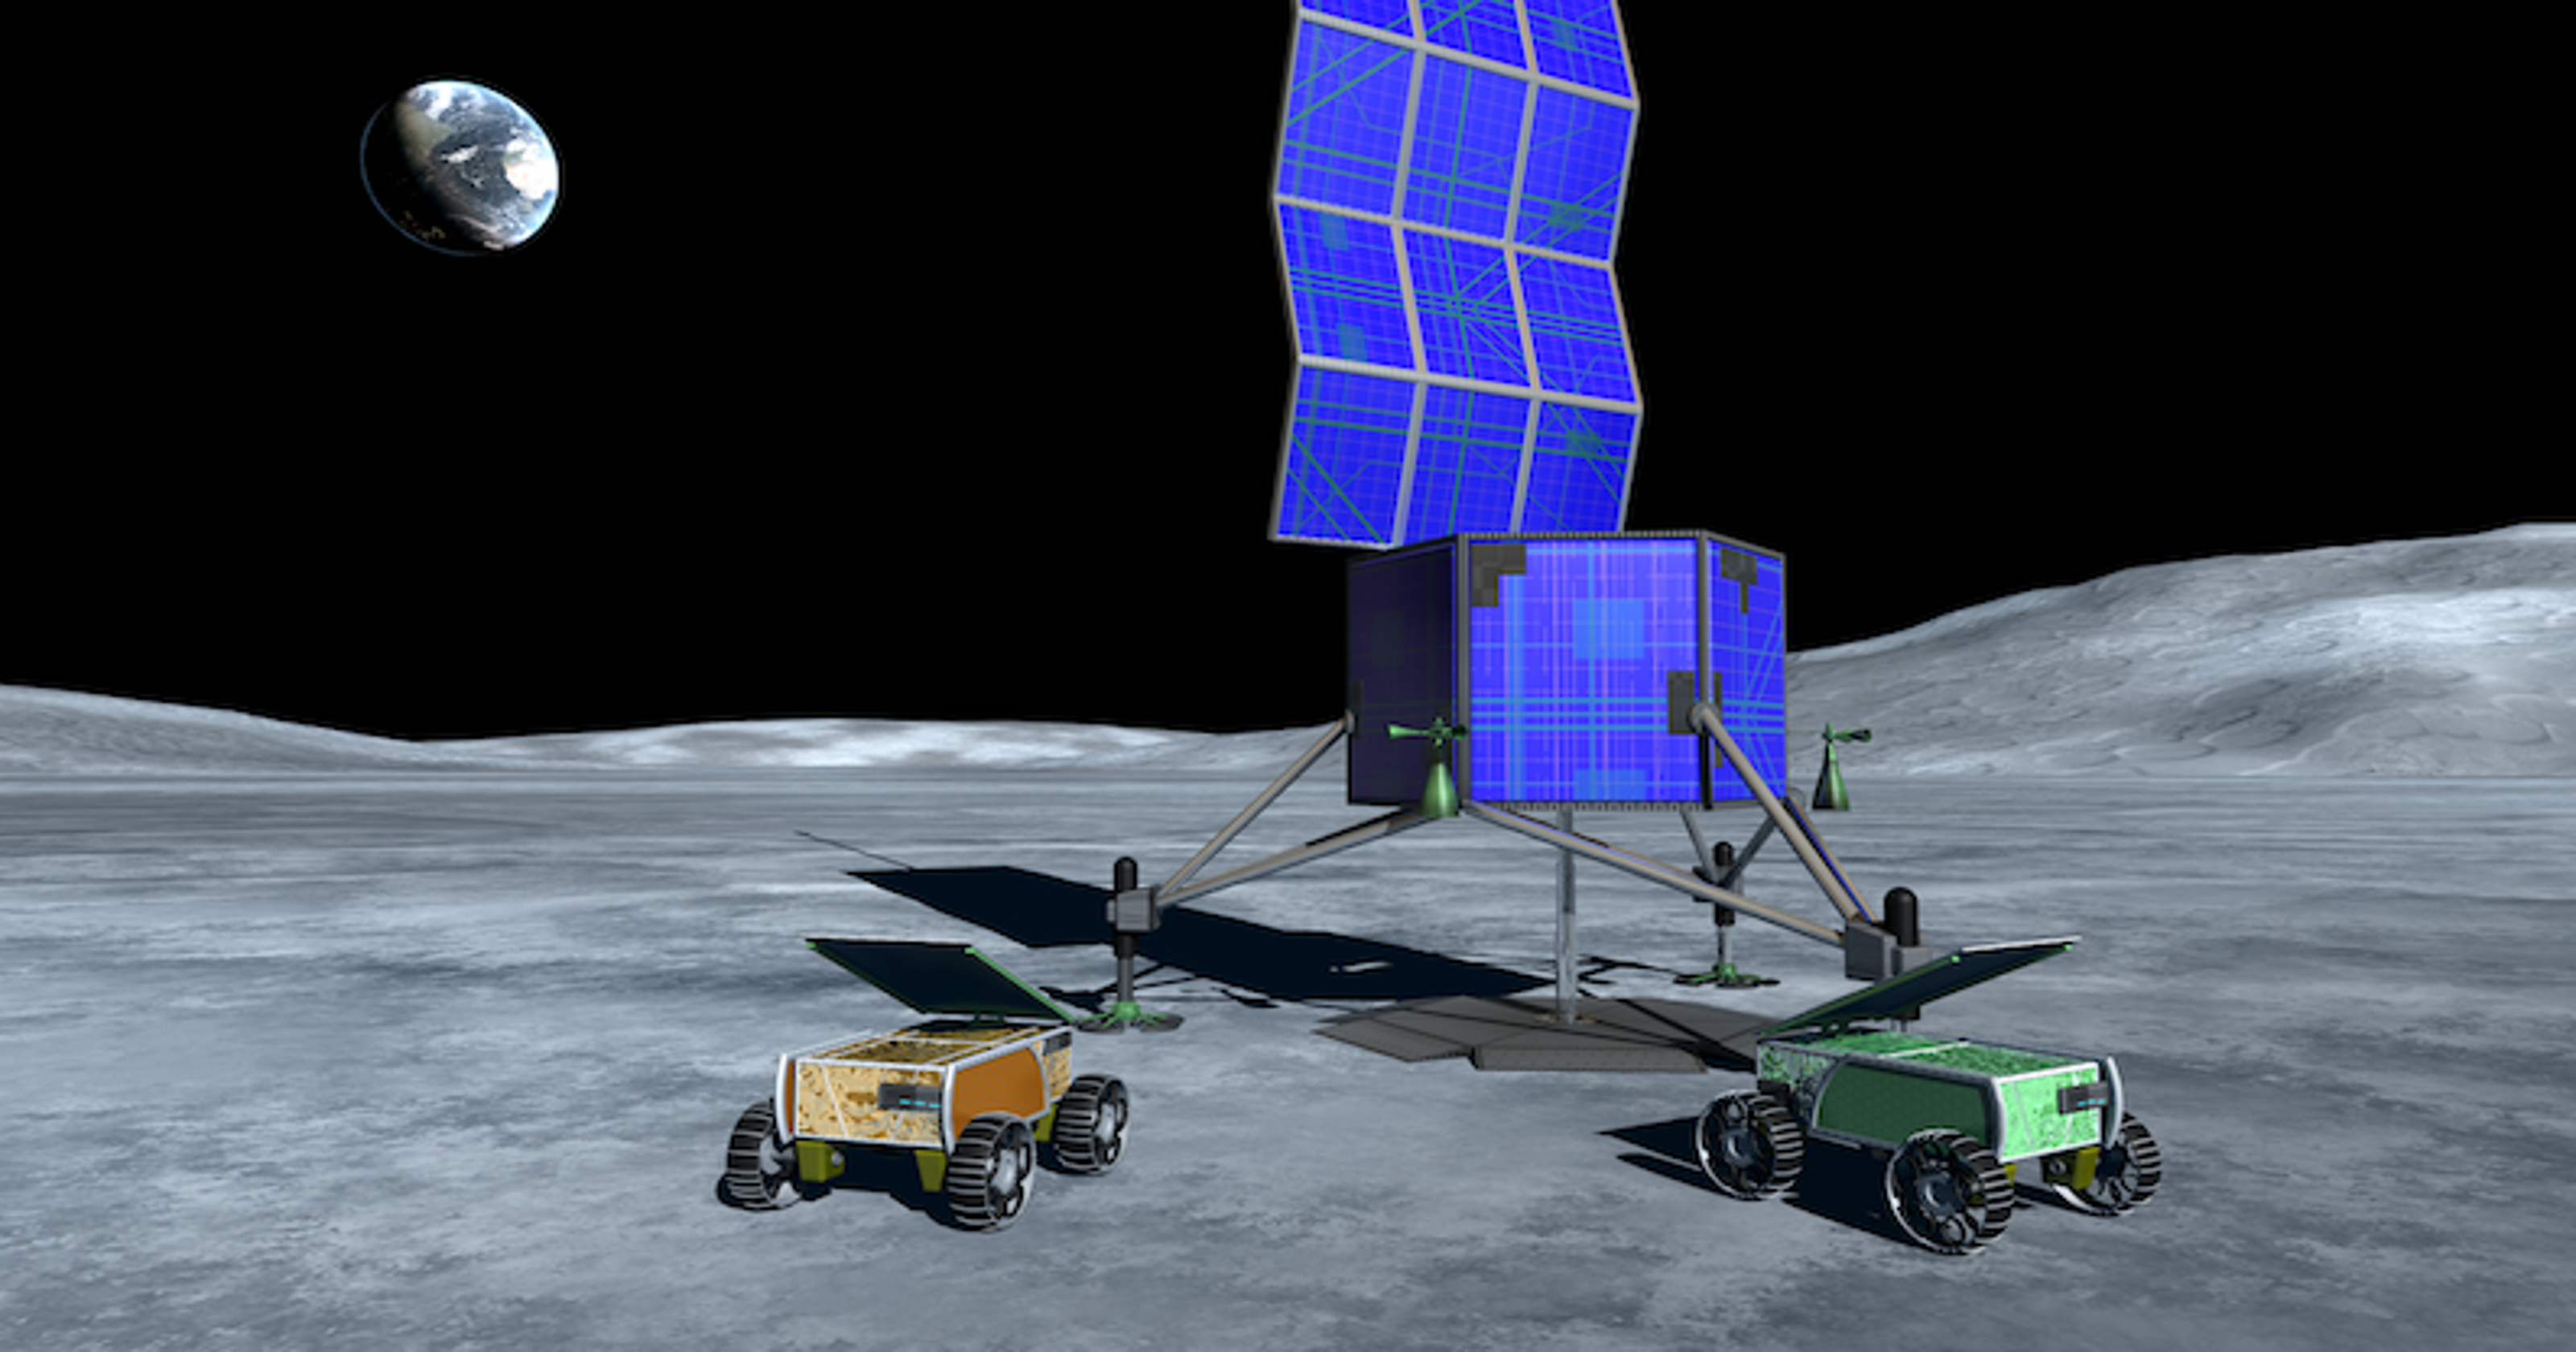 nasa commercial lunar payload services - HD3200×1680